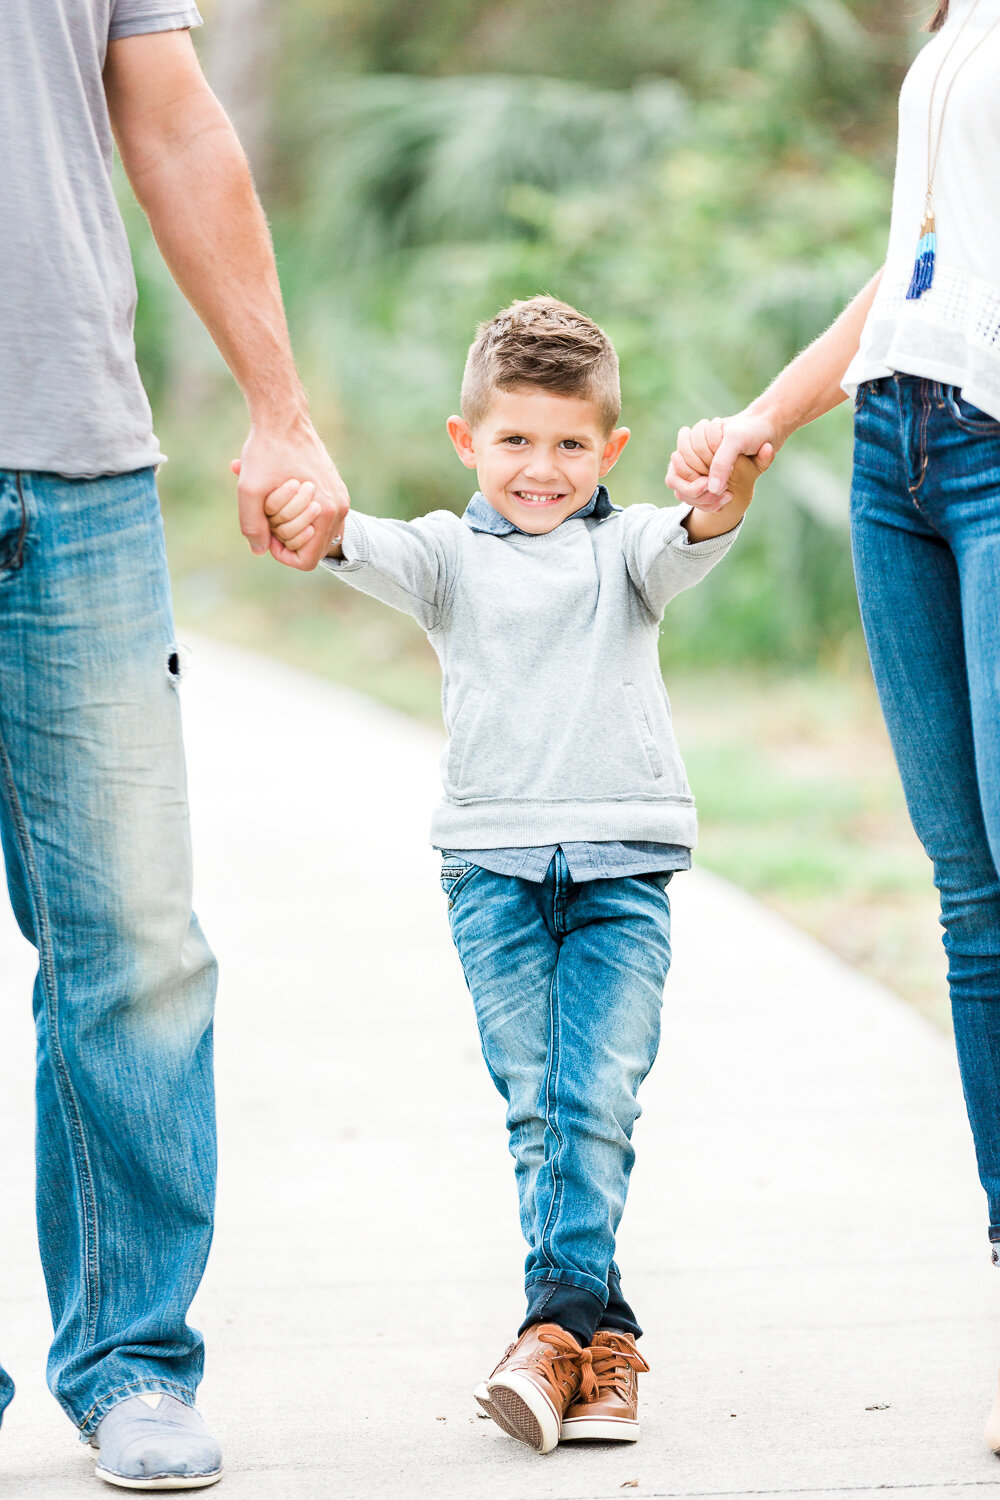 Nocatee's 20 mile park family photoshoot in the fall